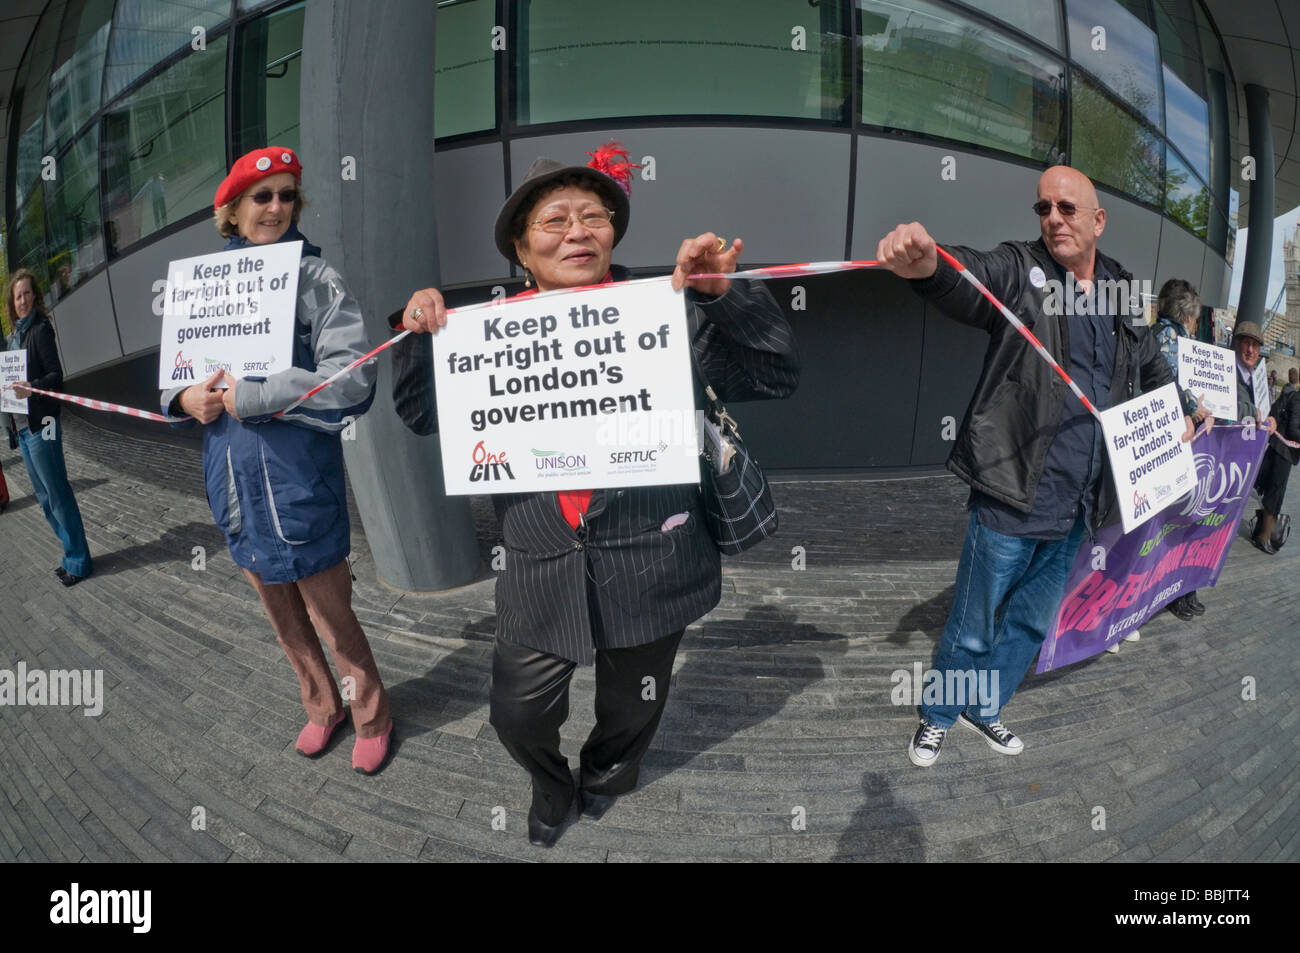 Londoners opposed to election of a BNP London Assembly member form a 'RIng of Democracy' around City Hall. - Stock Image